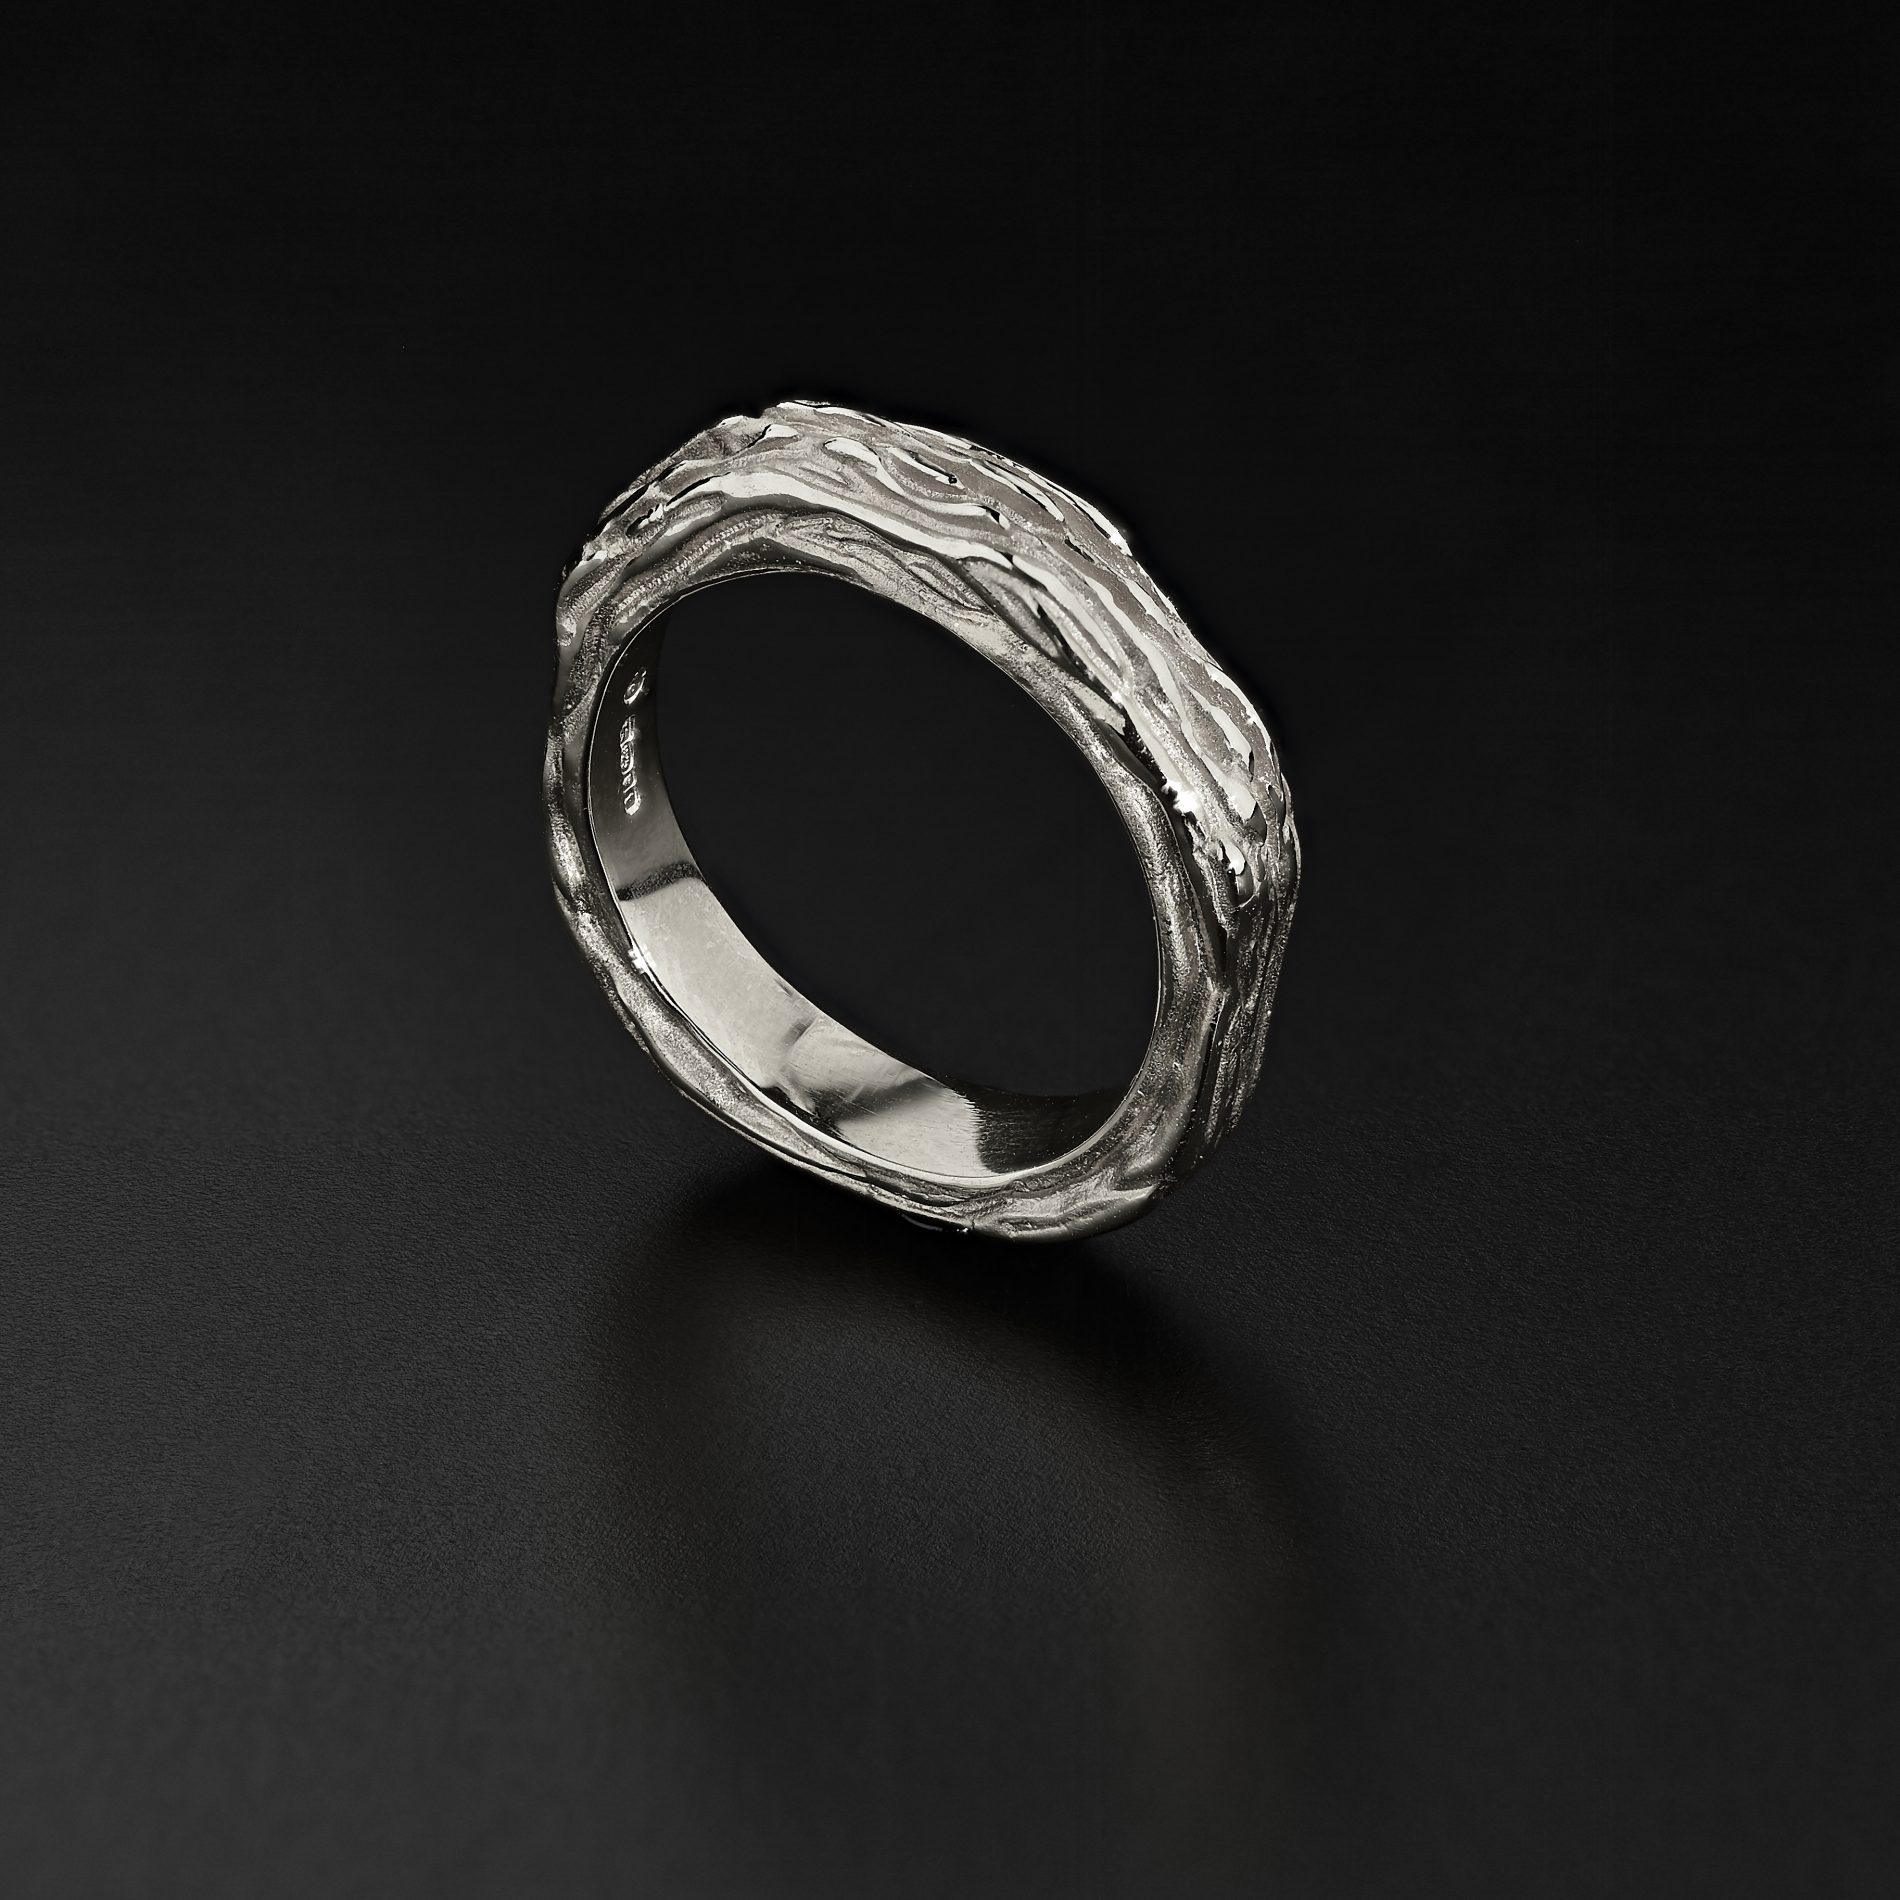 Silver/White Rhodium